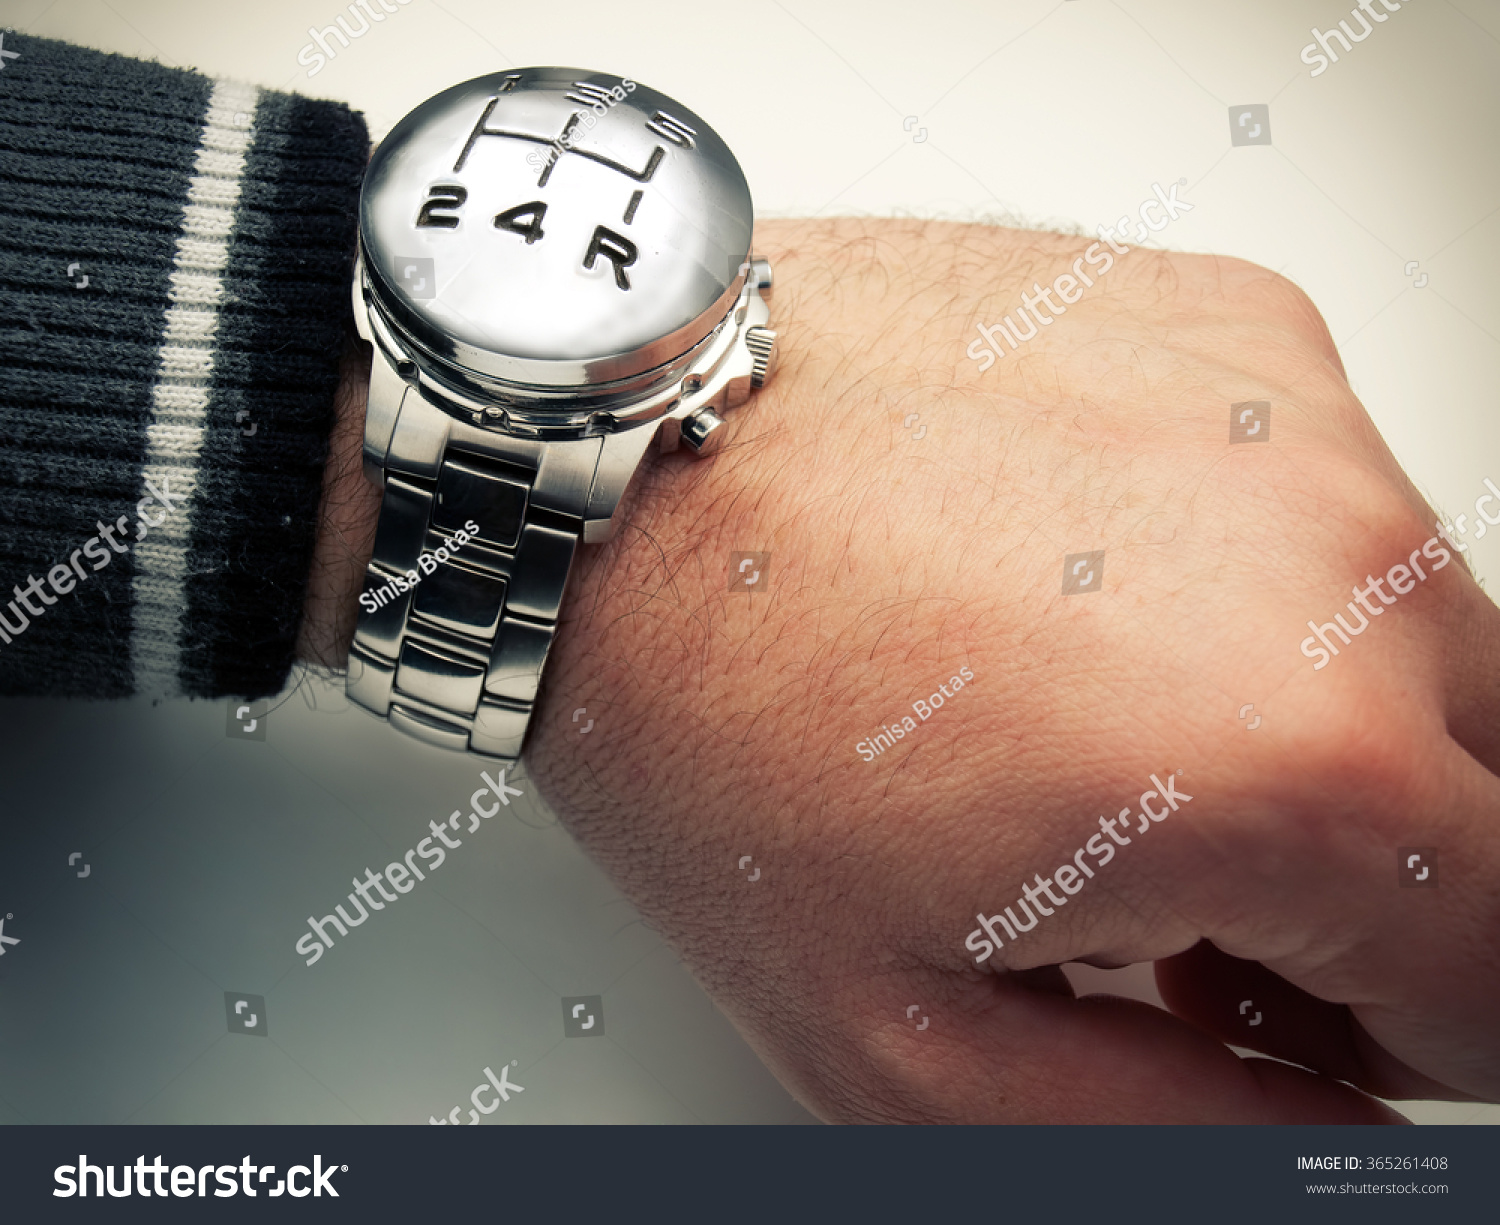 Watch marks on wrist - Conceptual Image With Speed Gear Stick Marks And Wrist Watch